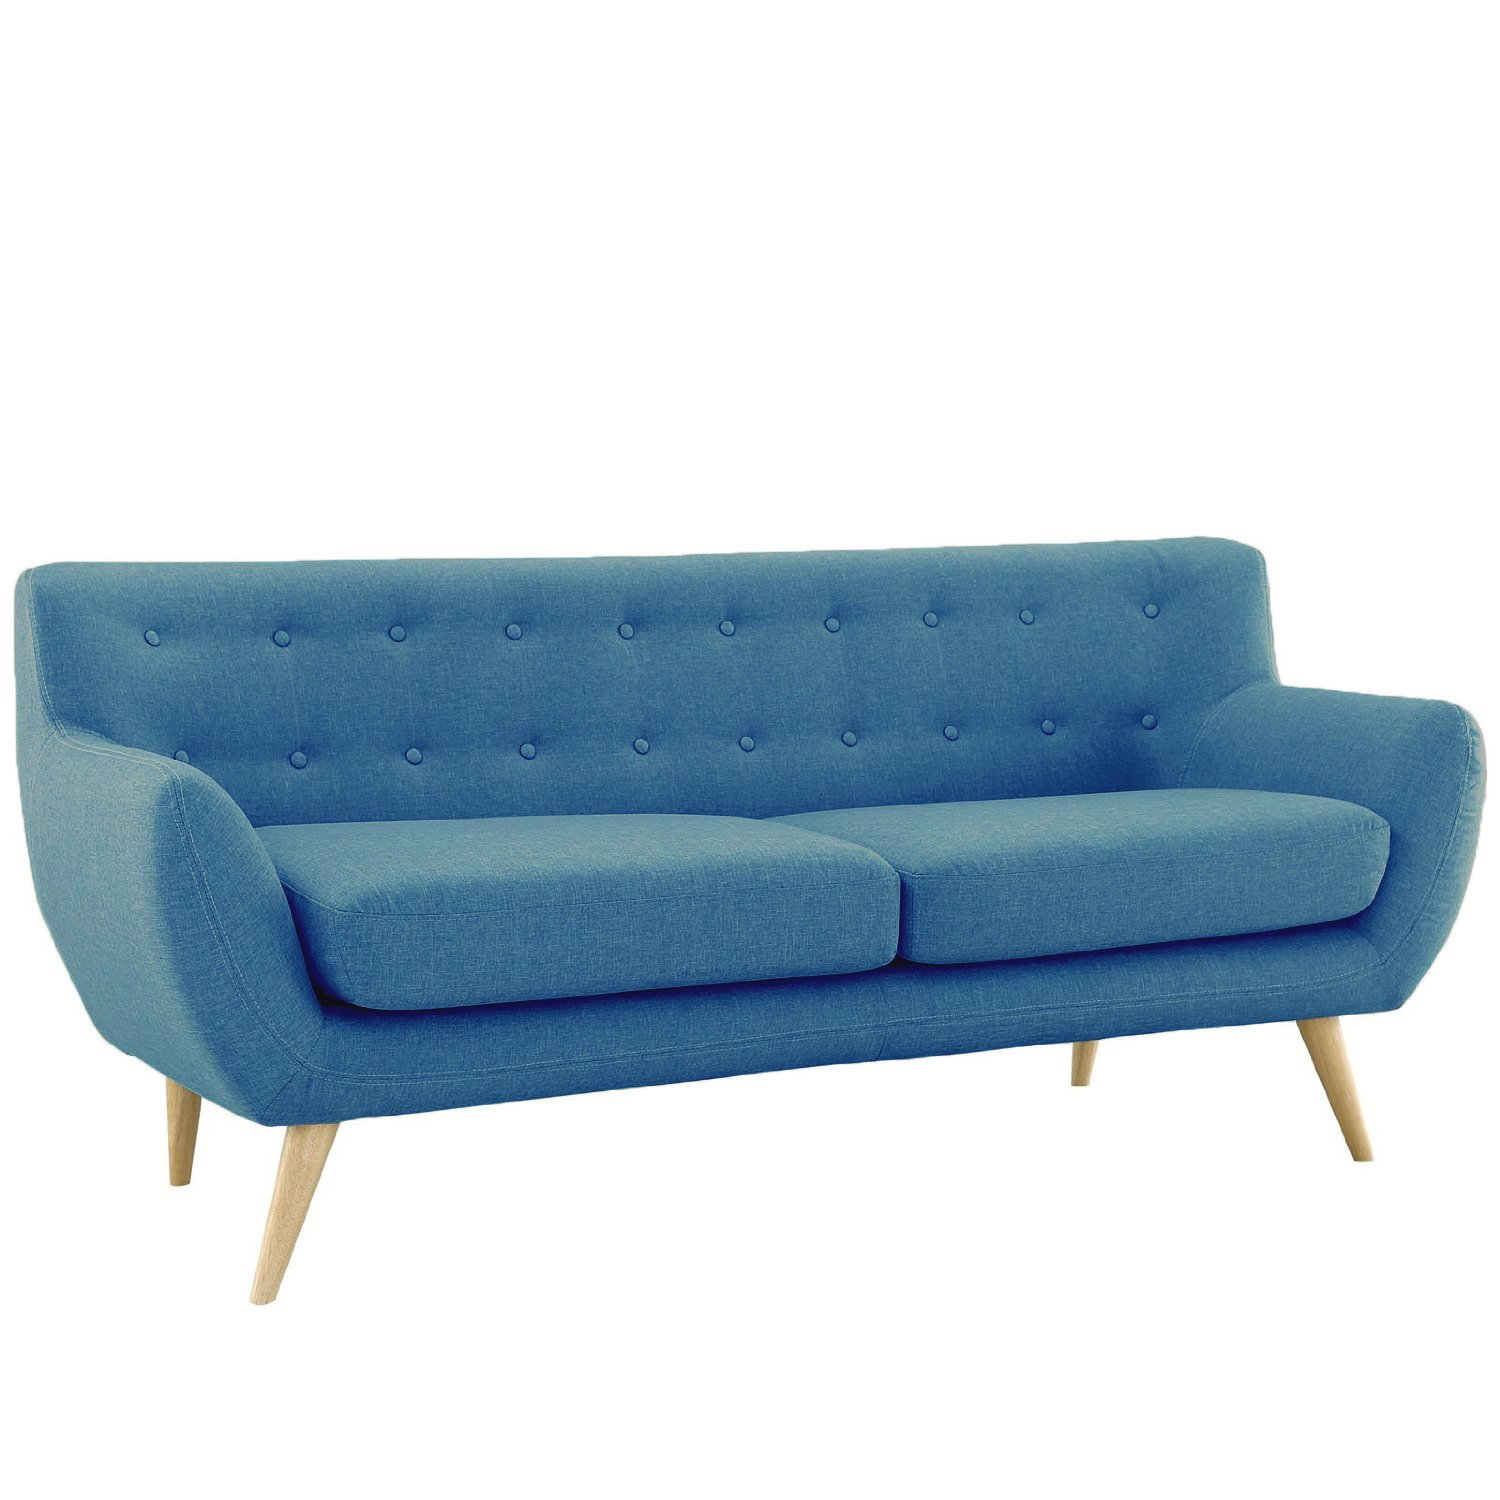 sofa on amazon west elm leather uk what is a this sleek and stylish doing  bgr